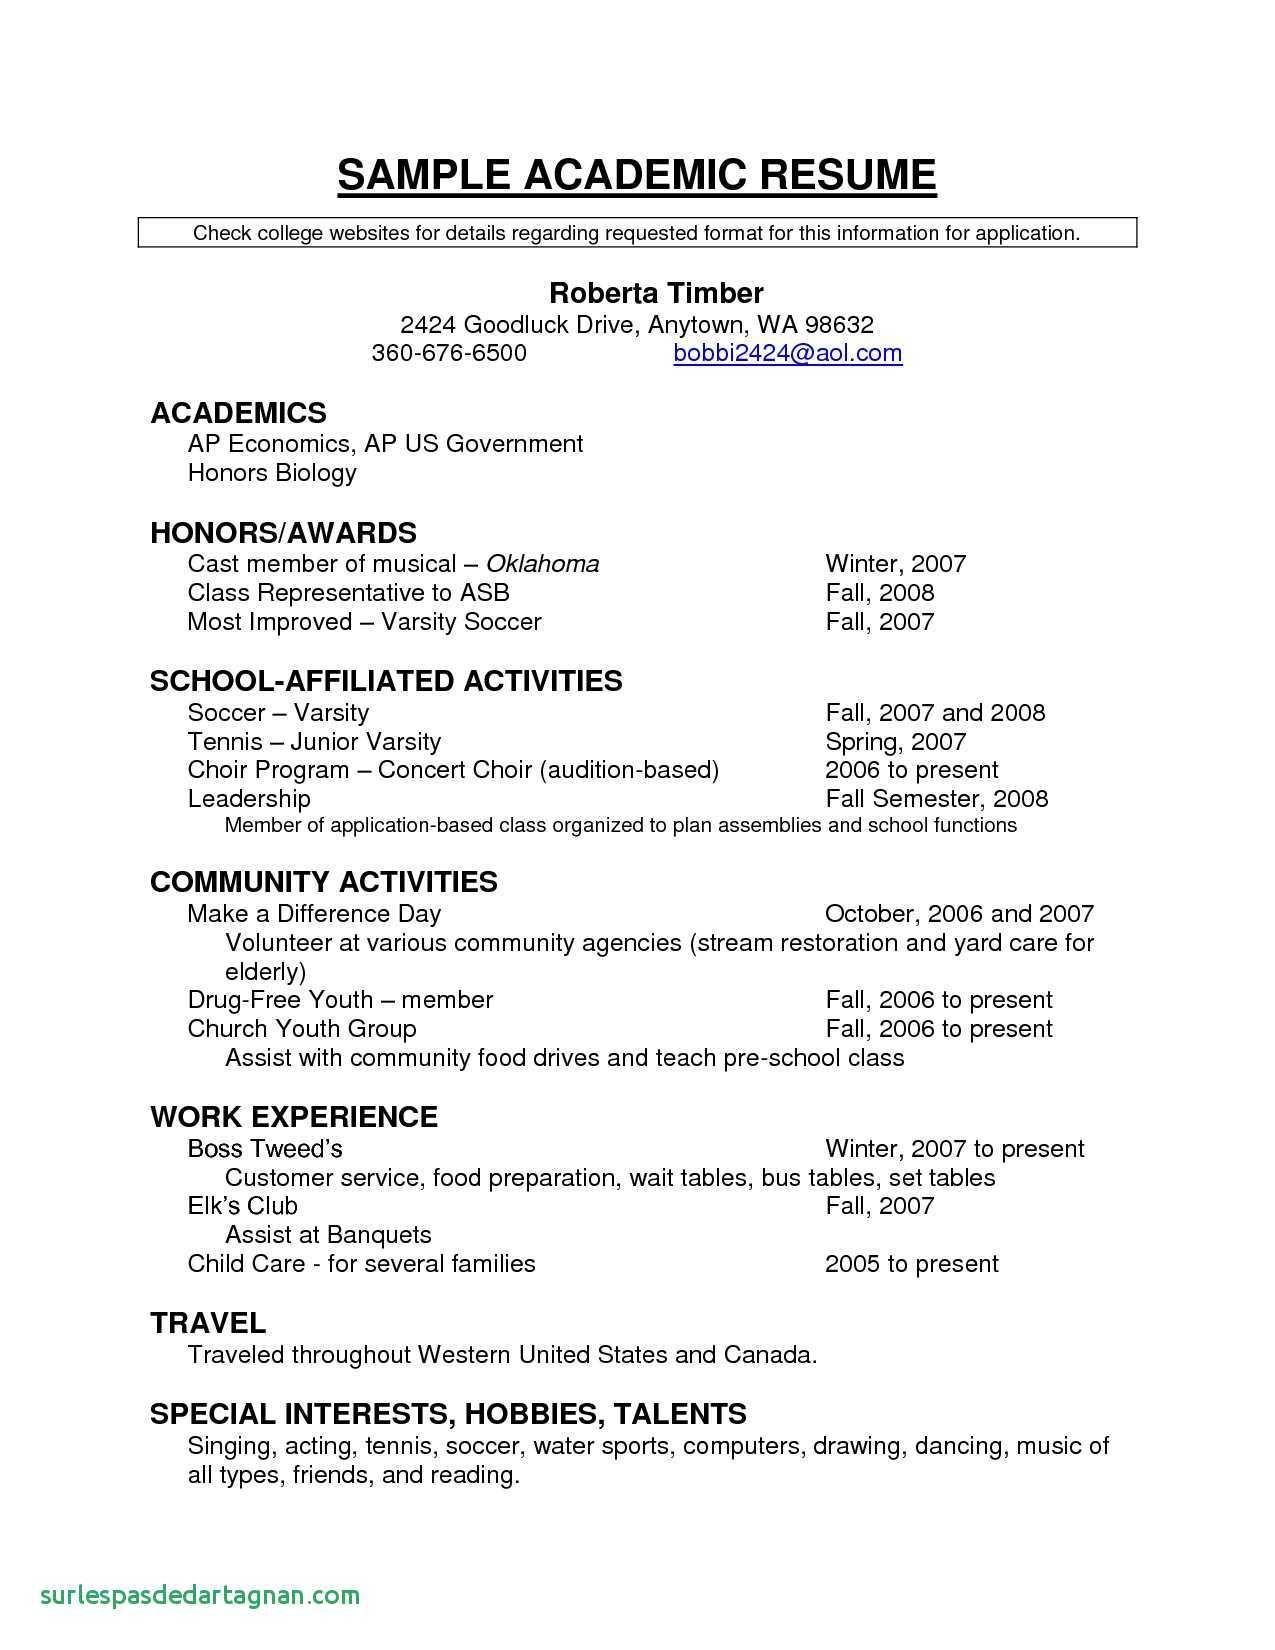 Good Resume Layout - Good Resume Examples New Unique Resume for Highschool Students